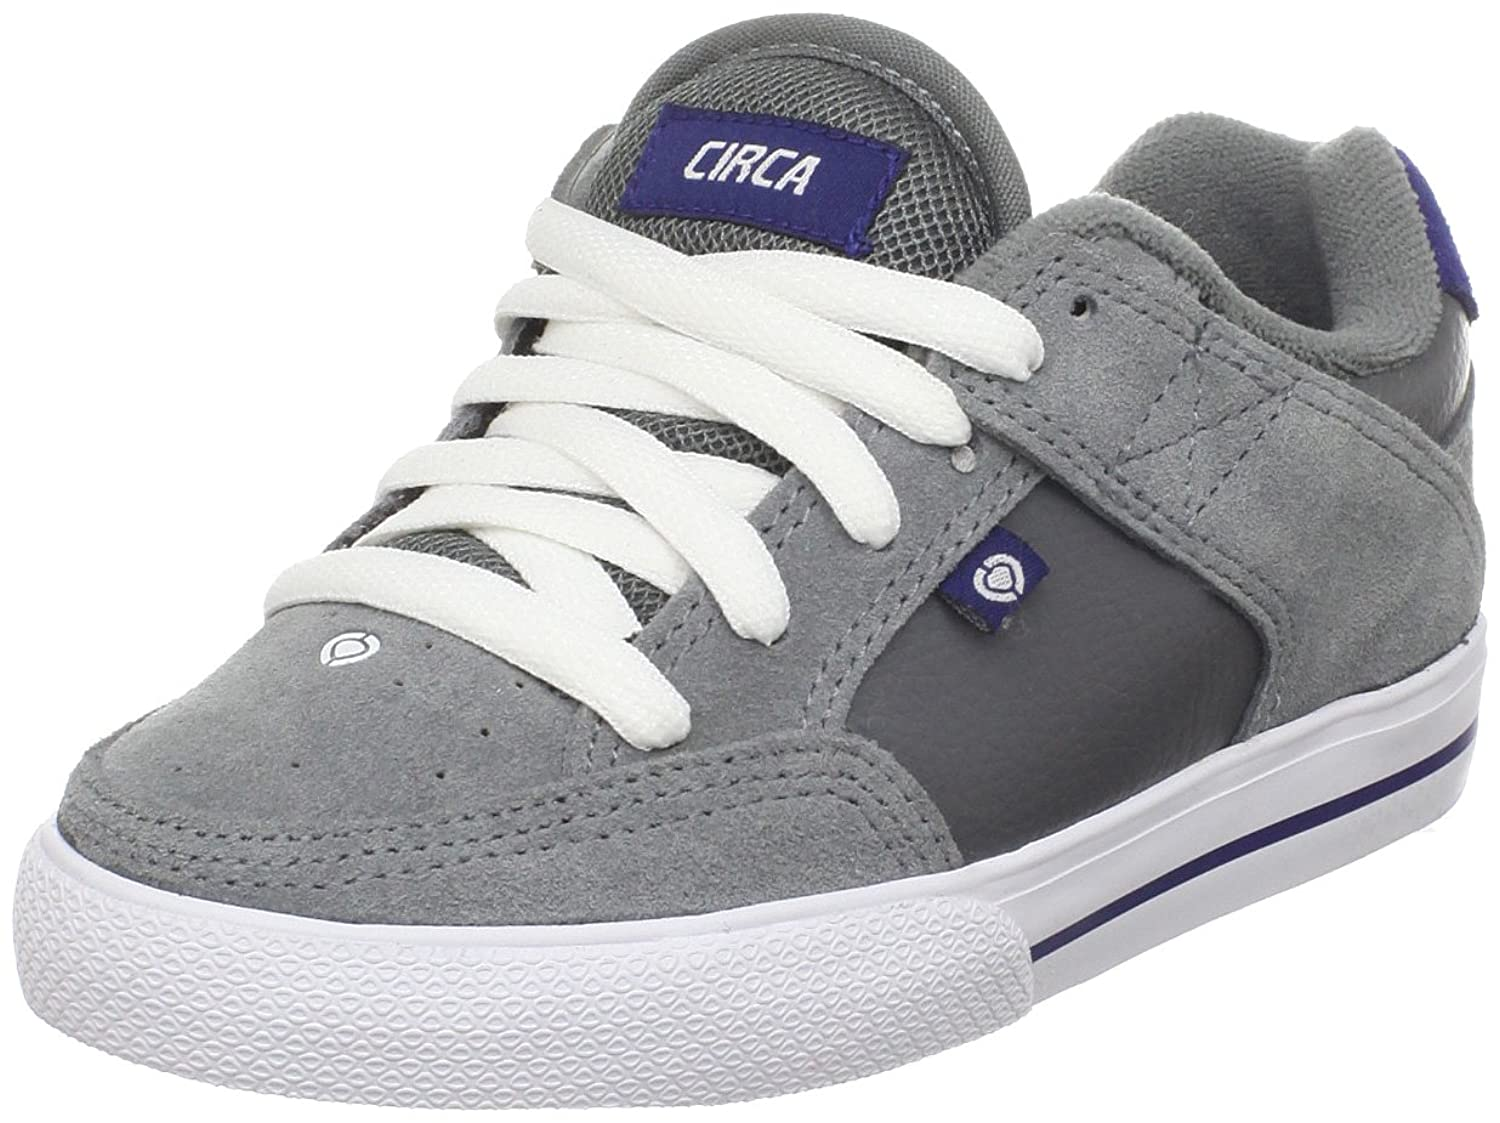 [C1RCA] 205?Vulcanized Skate Shoe (Little Kid/Big Kid)